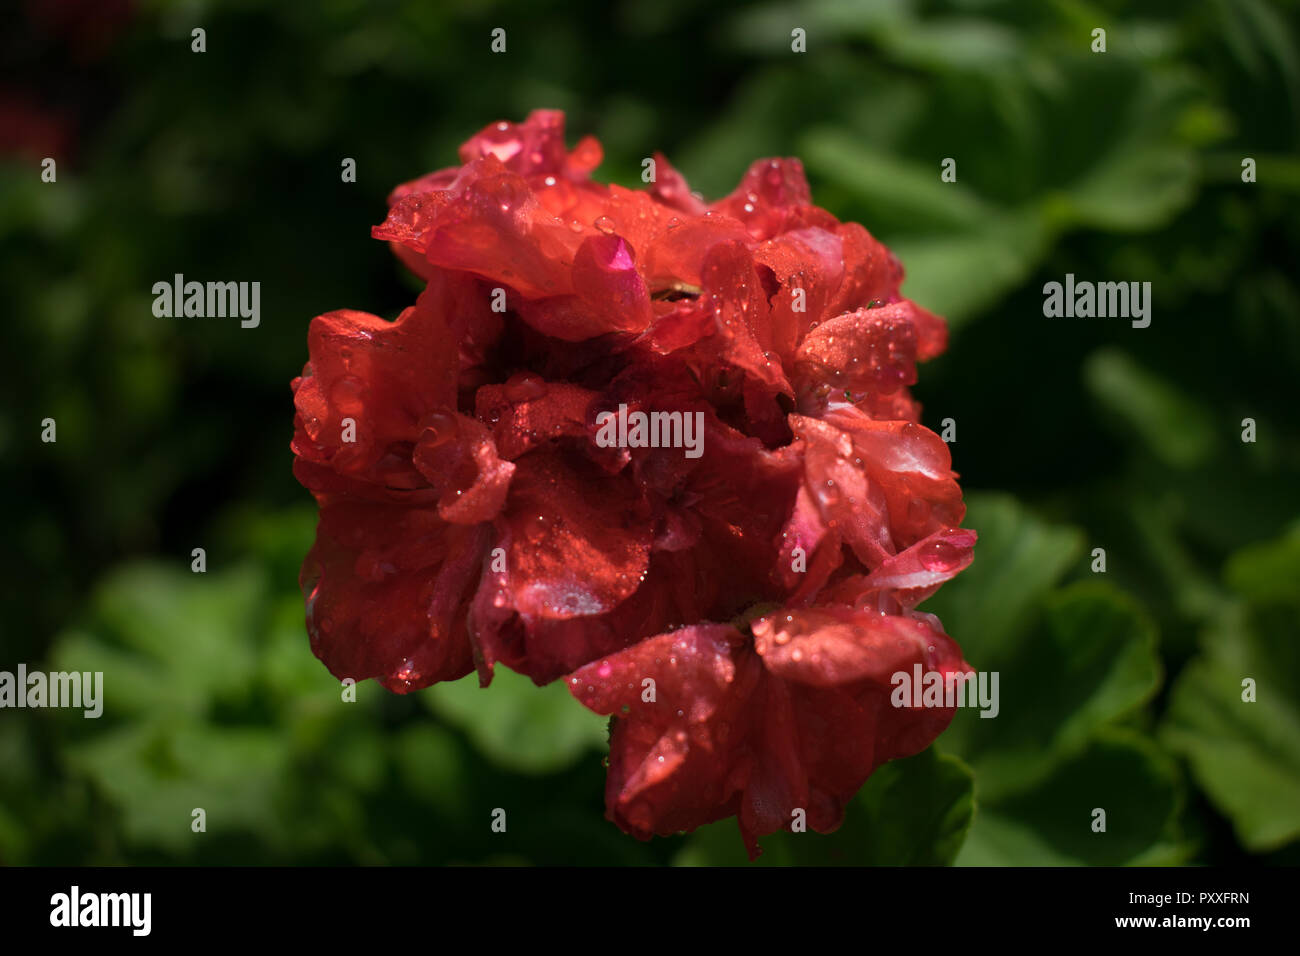 a picture of a reddish Orange flower - Stock Image